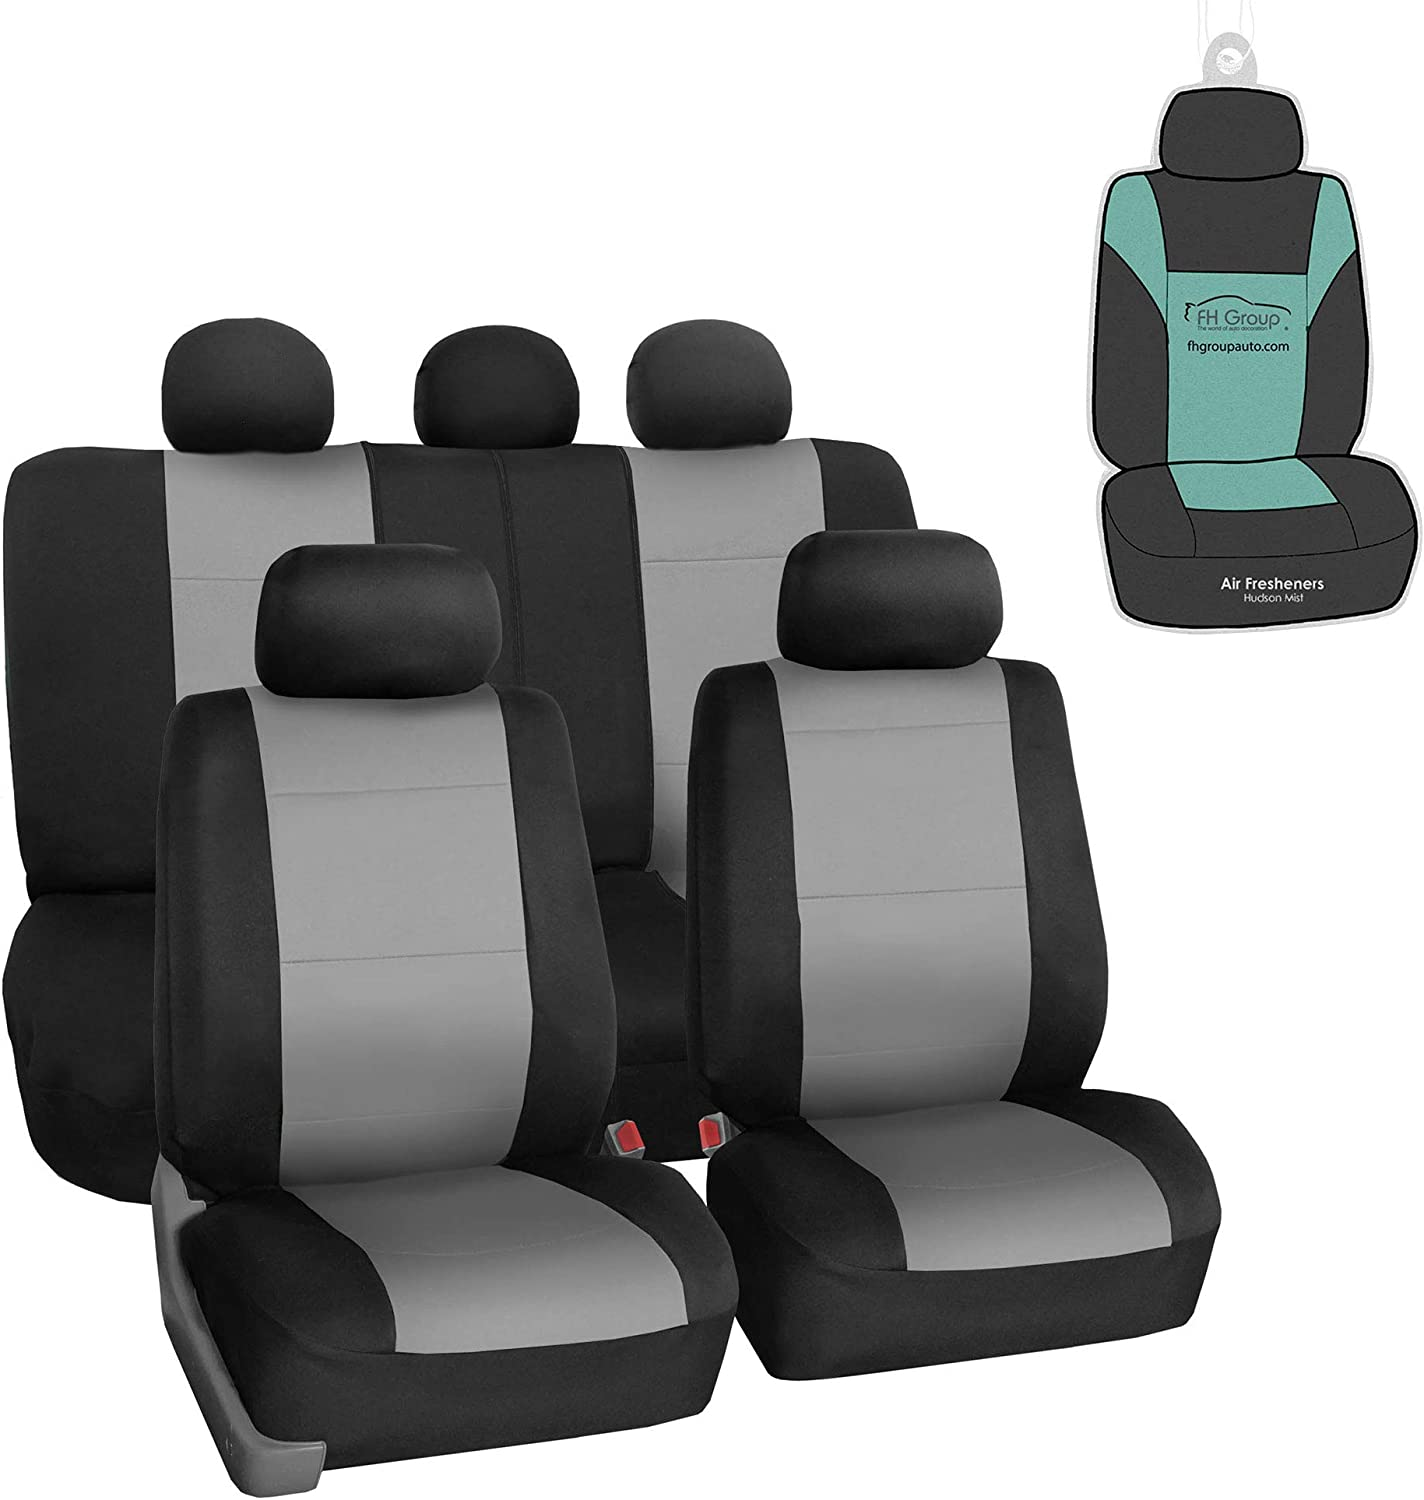 FH Group FB083115 Neoprene Seat Covers (Gray) Full Set with Gift – Universal Fit for Cars Trucks and SUVs